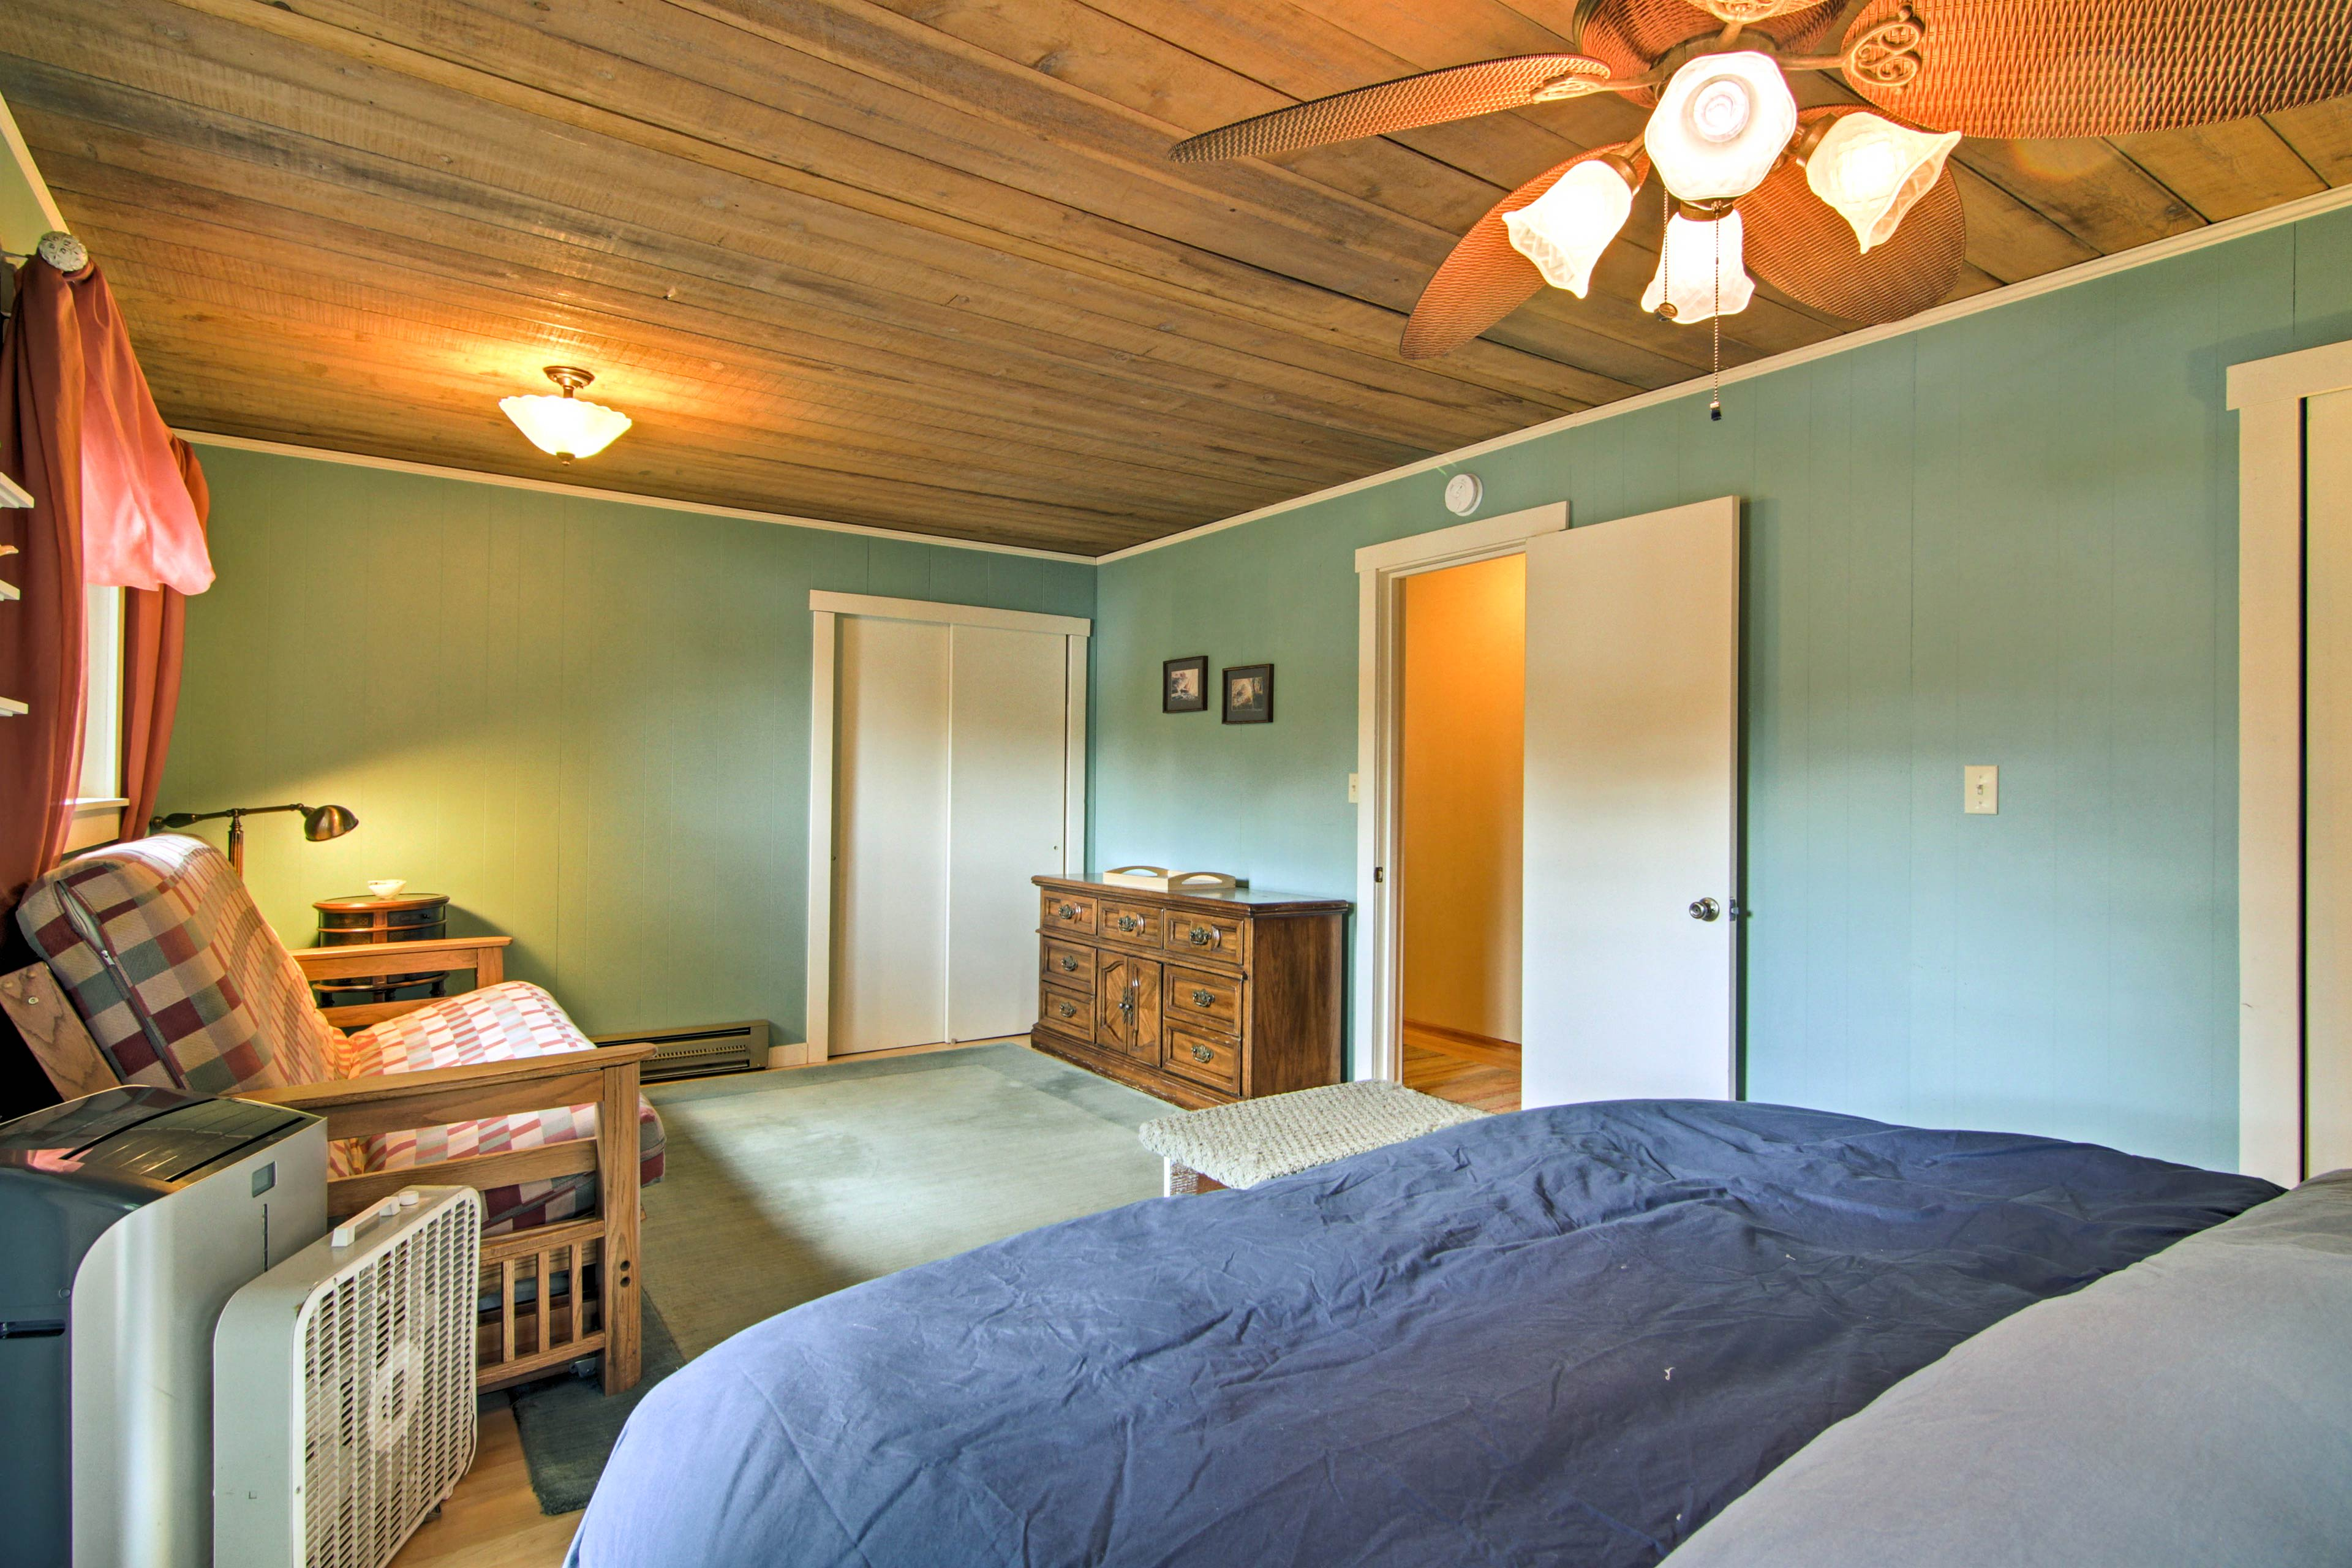 Sleep 4 in the master bedroom with a king-sized bed and queen-sized futon.